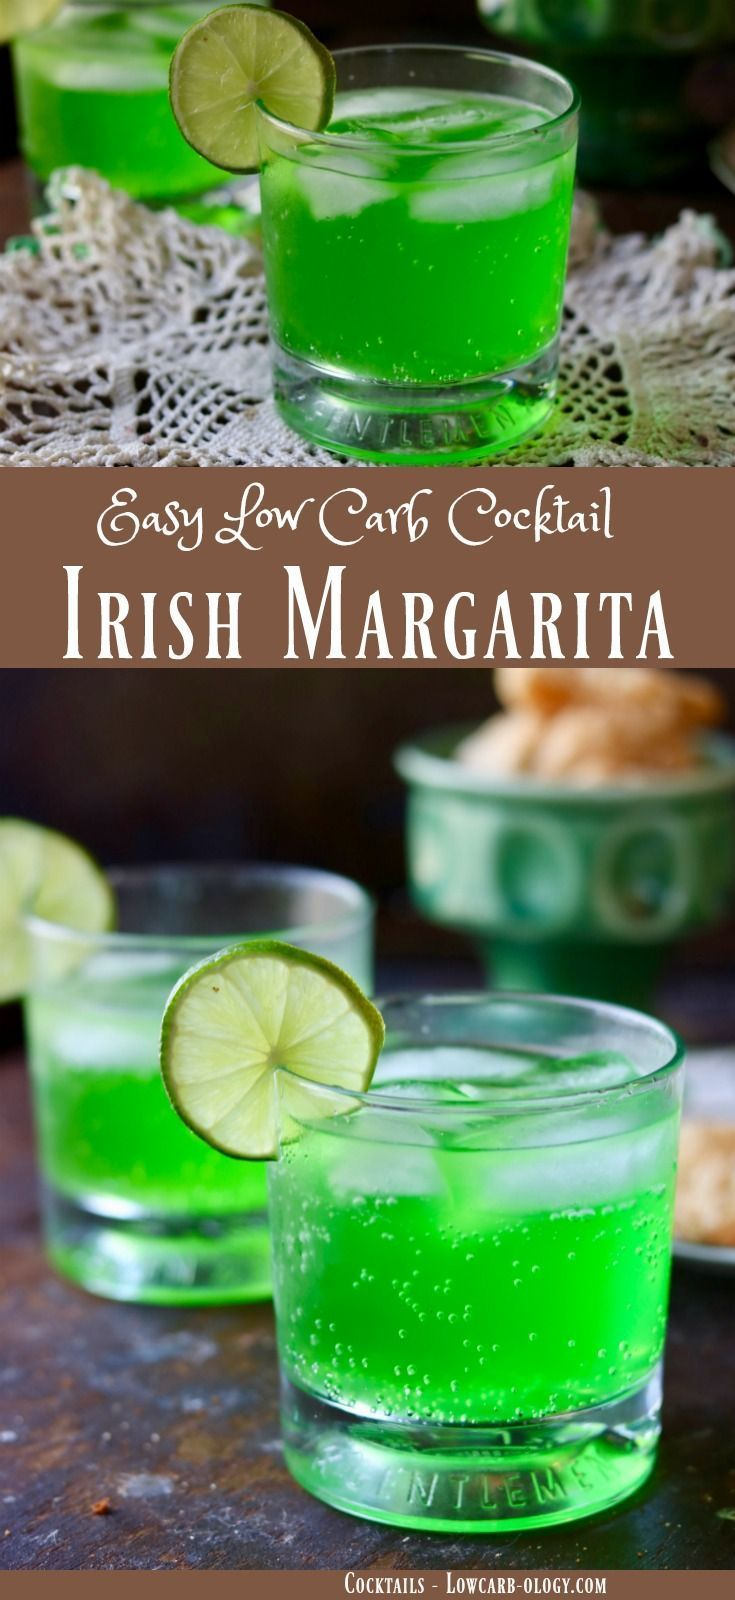 Easy, low carb margarita recipe has 0 carbs. It's the perfect green cocktail for St Patrick's day or anytime you want a refreshing tequila based drink. From http://Lowcarb-ology.com via @Marye at Restless Chipotle